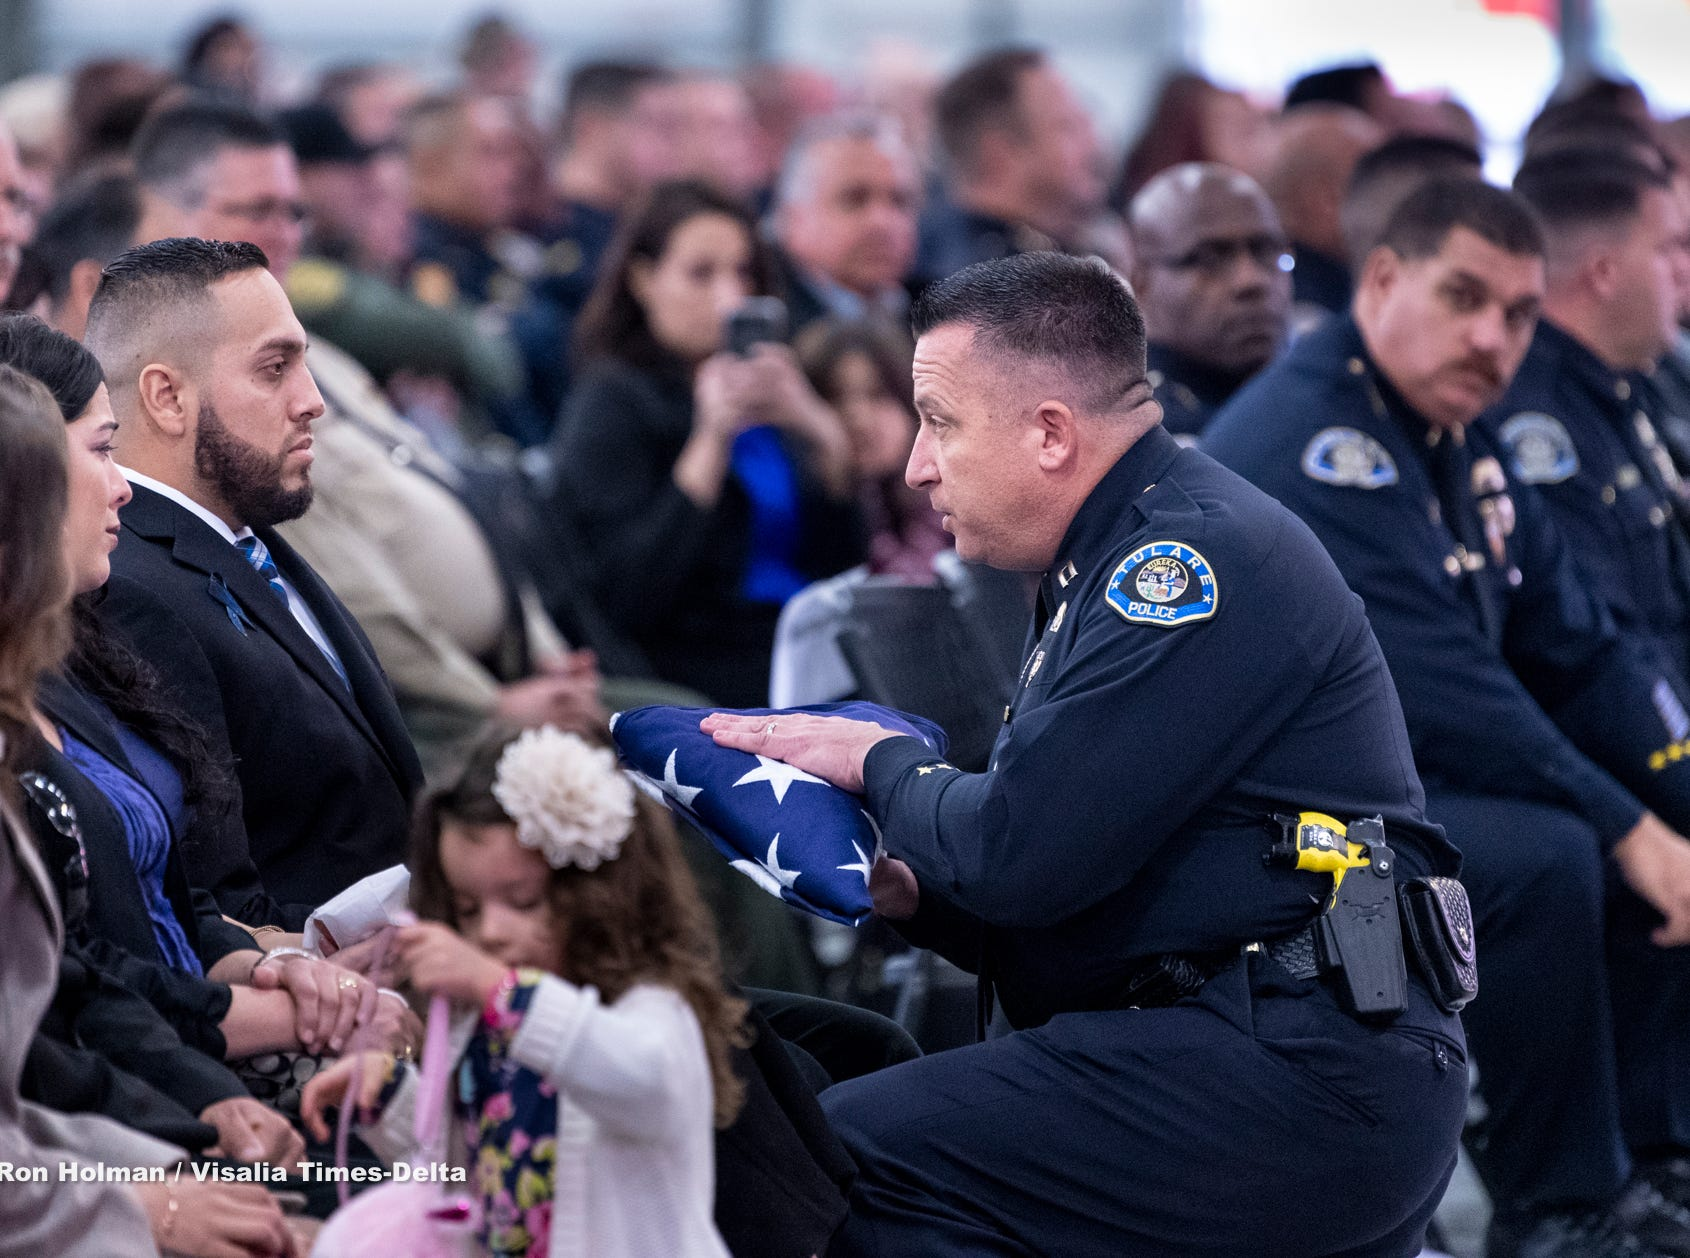 Tulare Interim Police Chief Matt Machado, right, presents a folded U.S. flag to Officer Ryan Garcia on Wednesday, January 9, 2019 during a memorial for Garcia's fallenTulare Police K-9 partner Bane. Bane was killed during an officer-involved shooting on December 9 of last year and is credited with saving Garcia's life.